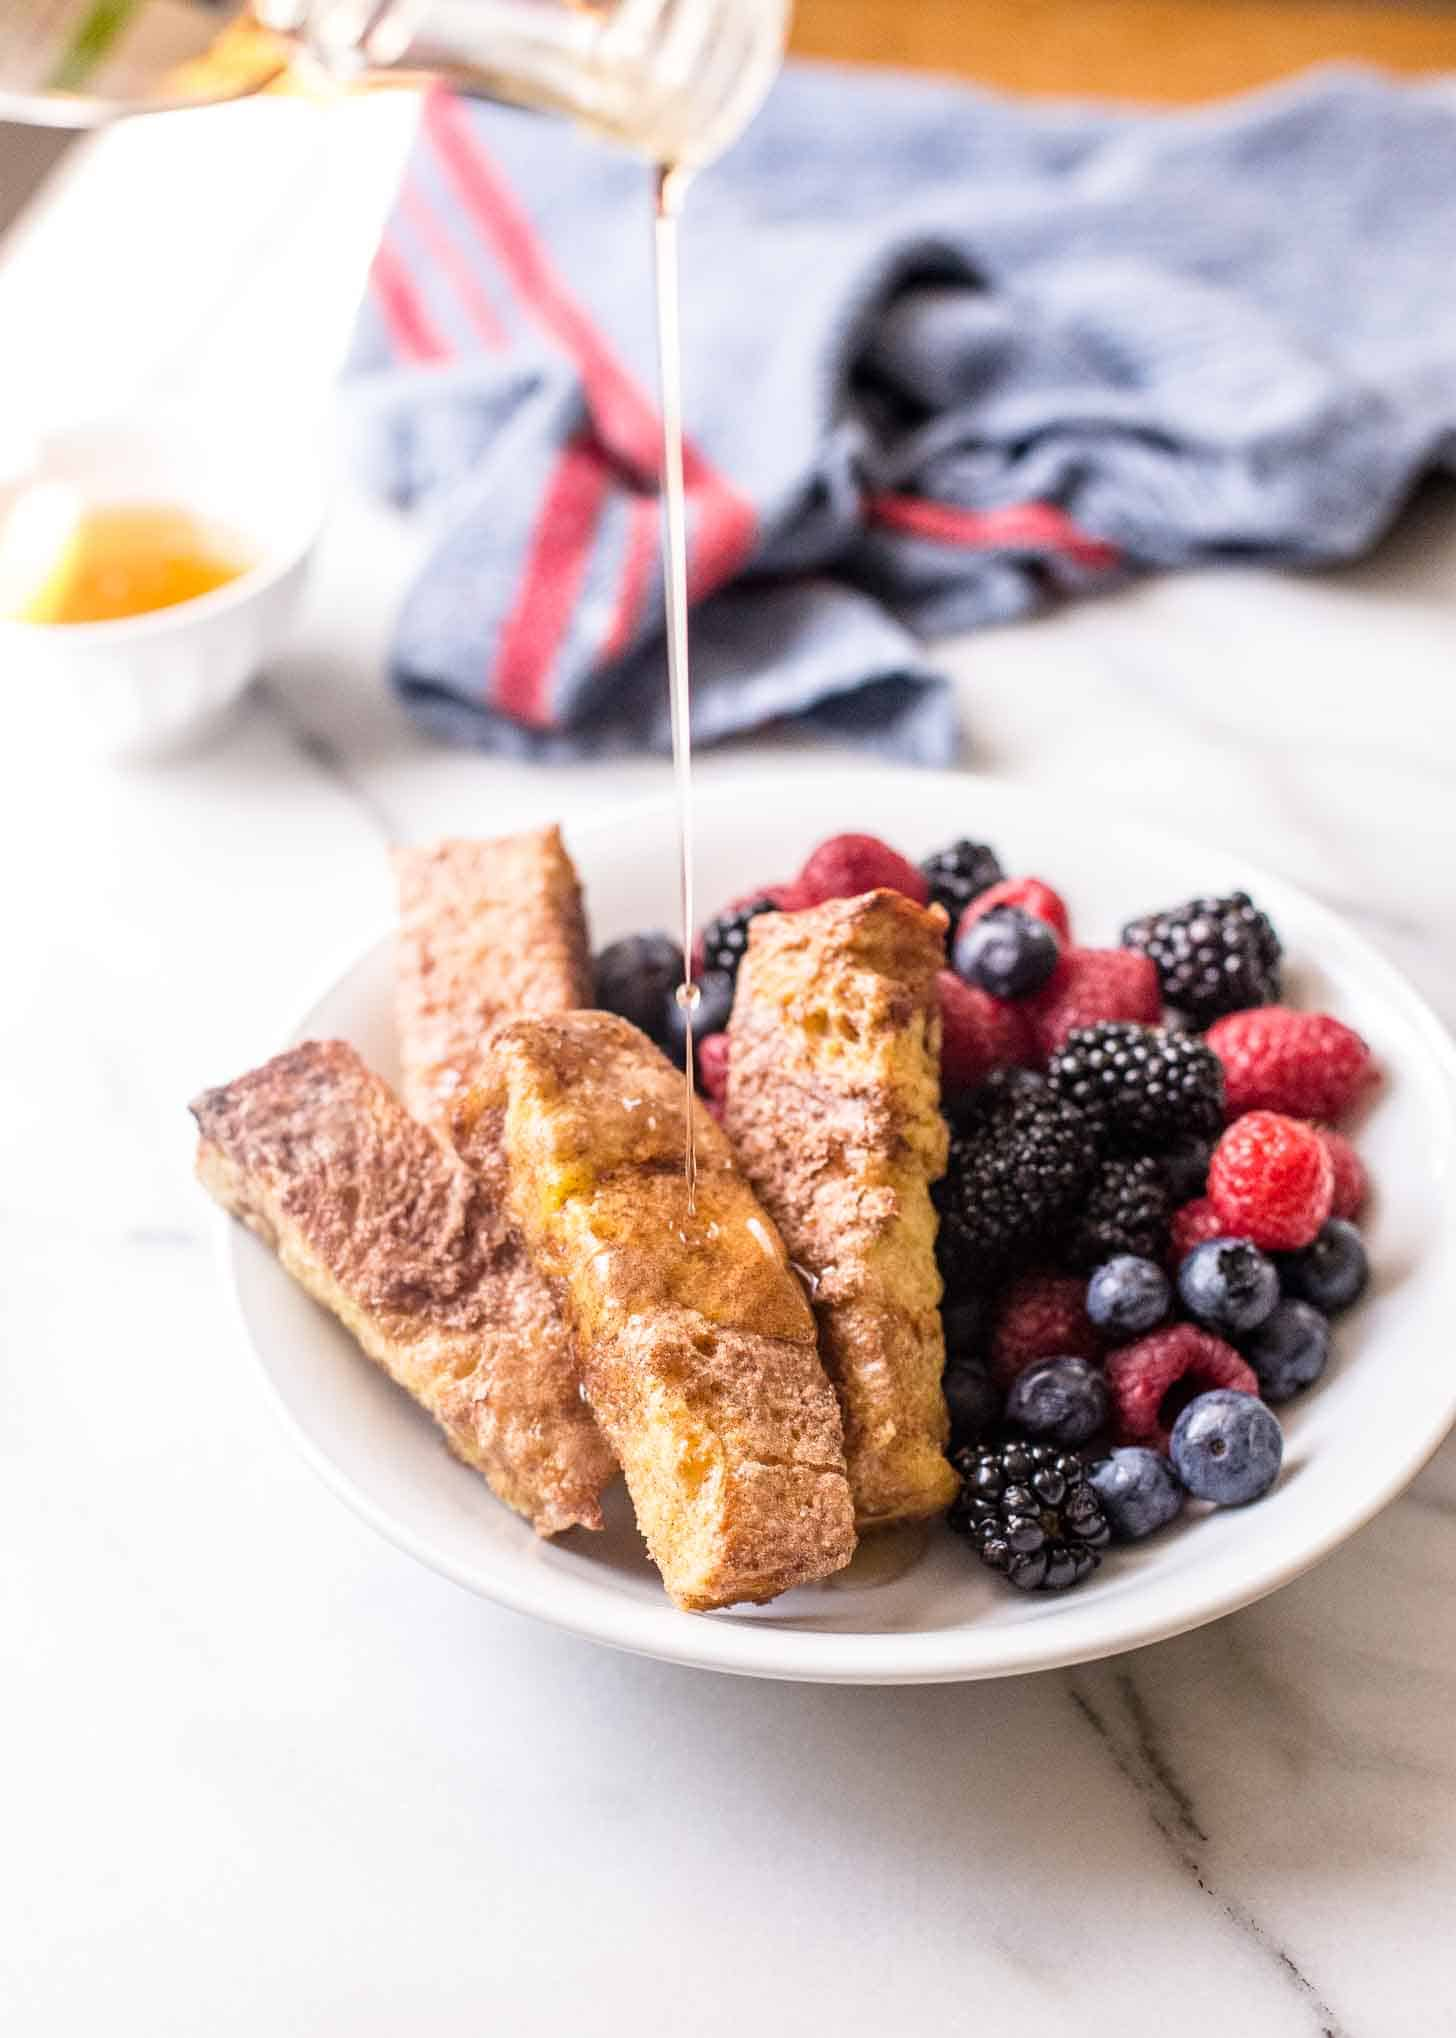 drizzling syrup on french toast sticks with berries in a white bowl